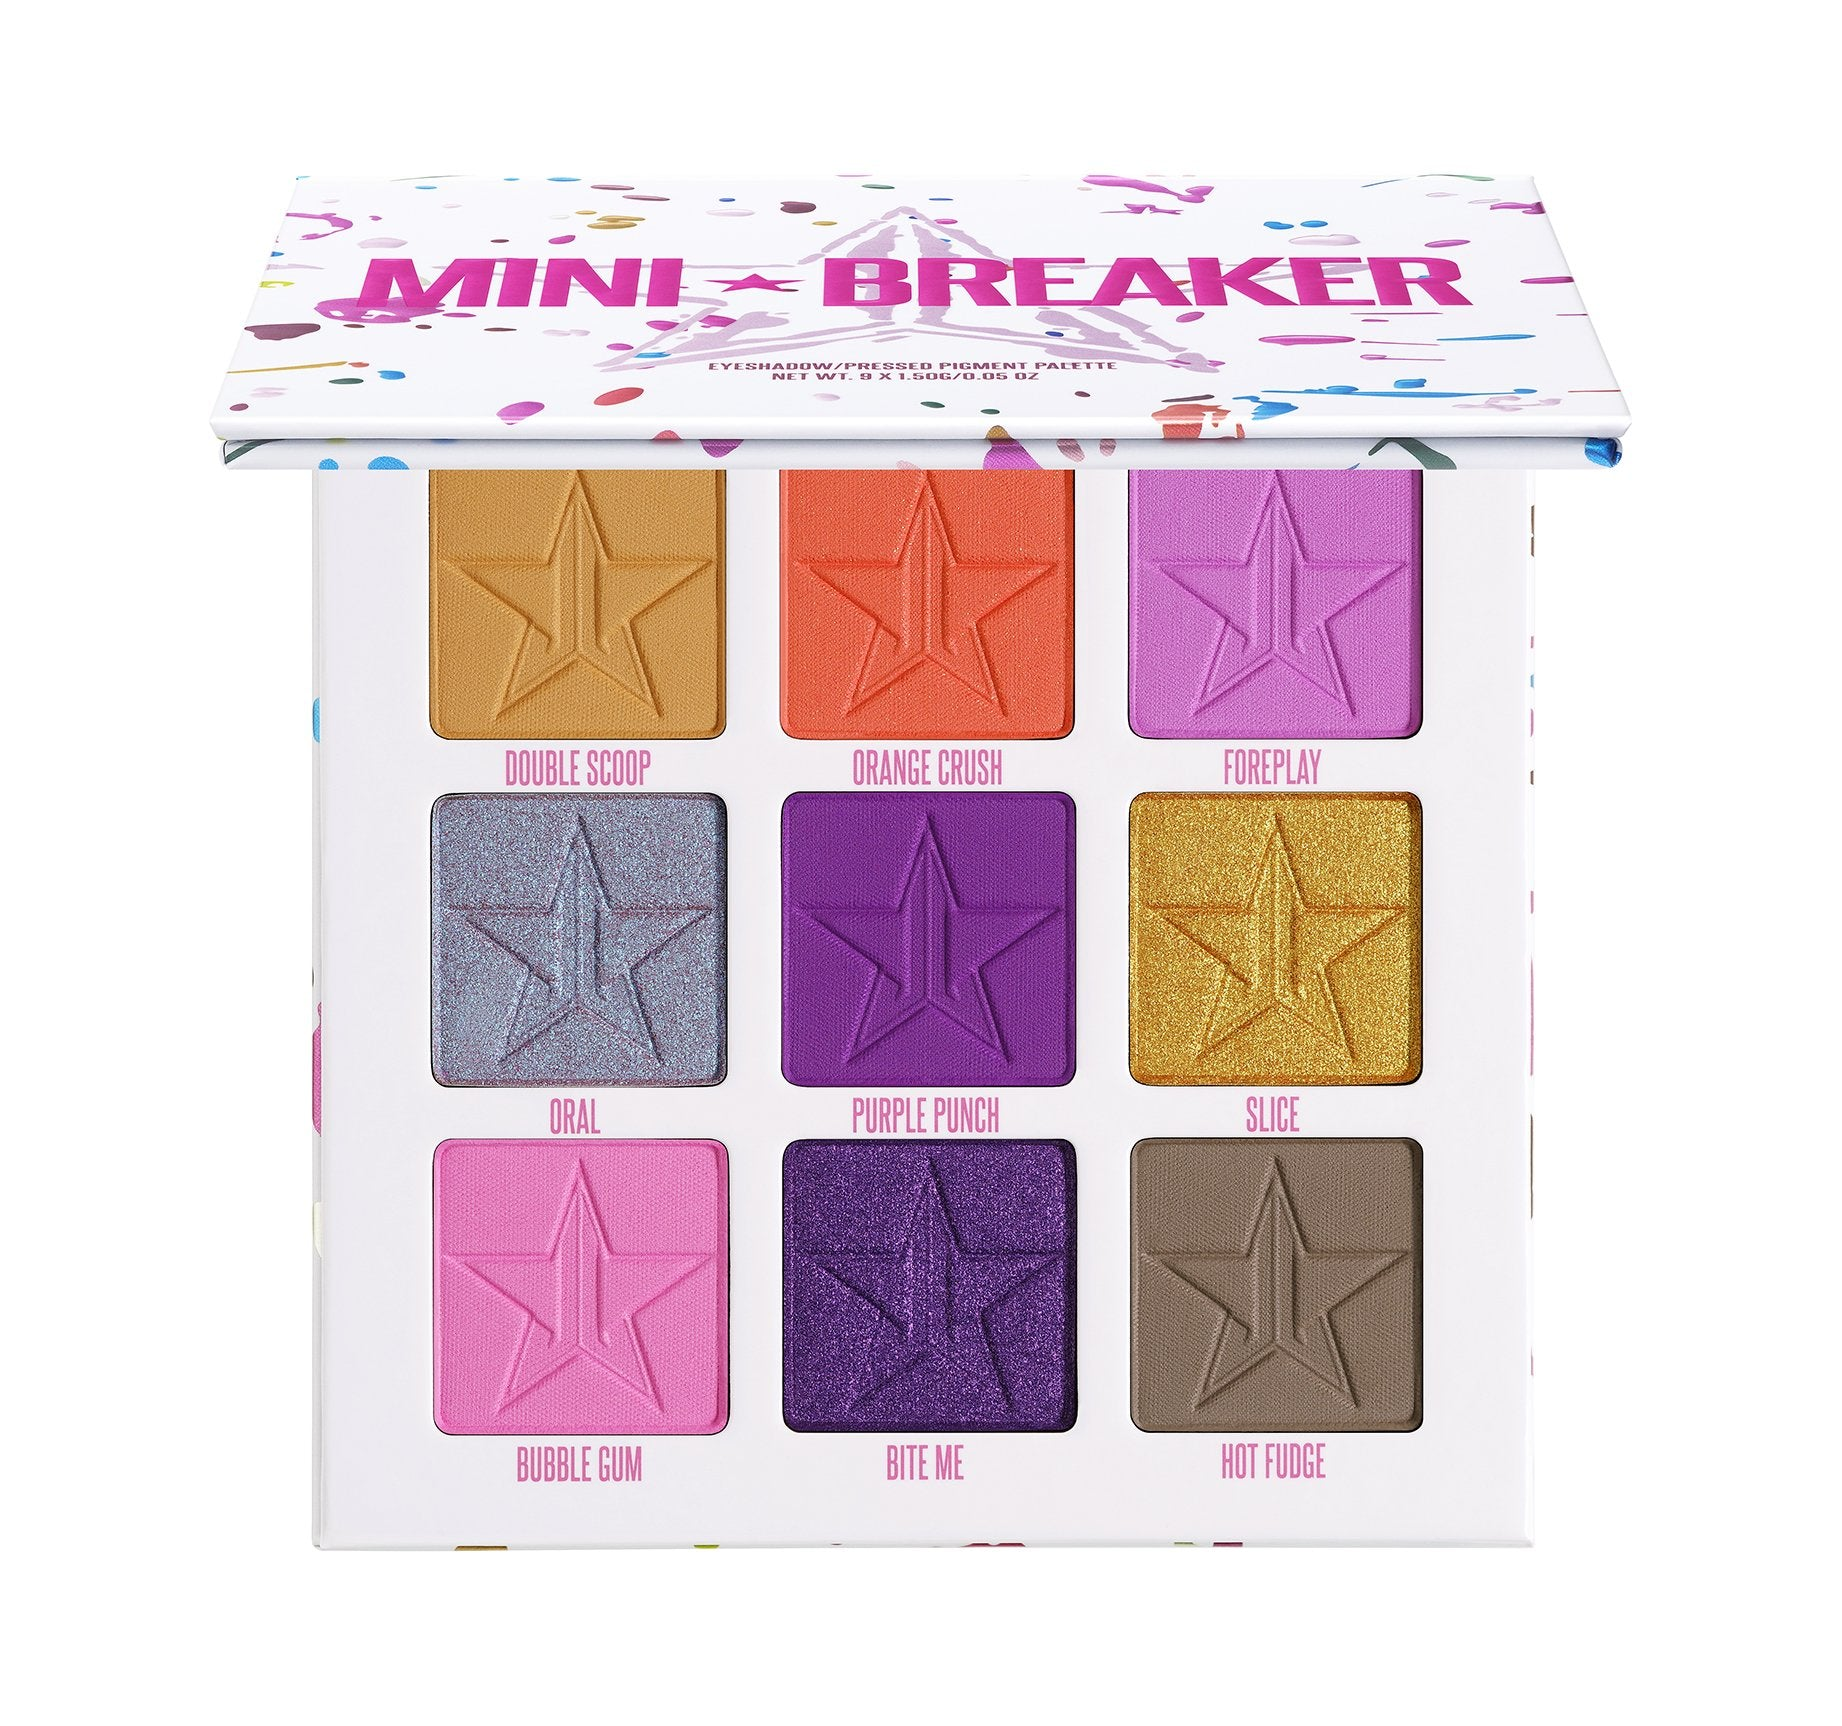 MINI BREAKER PALETTE, view larger image